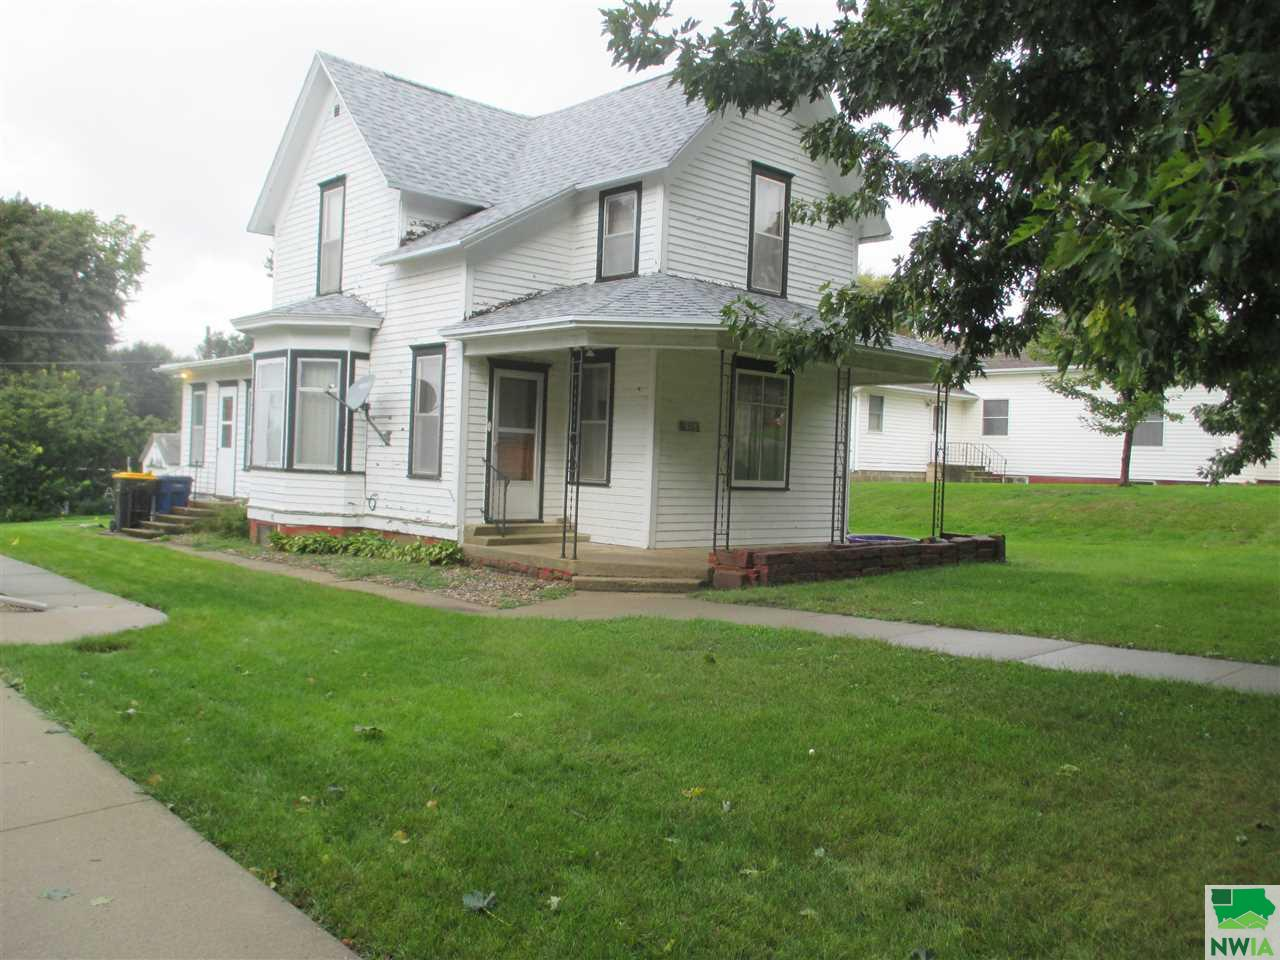 Property for sale at 318 N Main St., Kingsley,  Iowa 51028